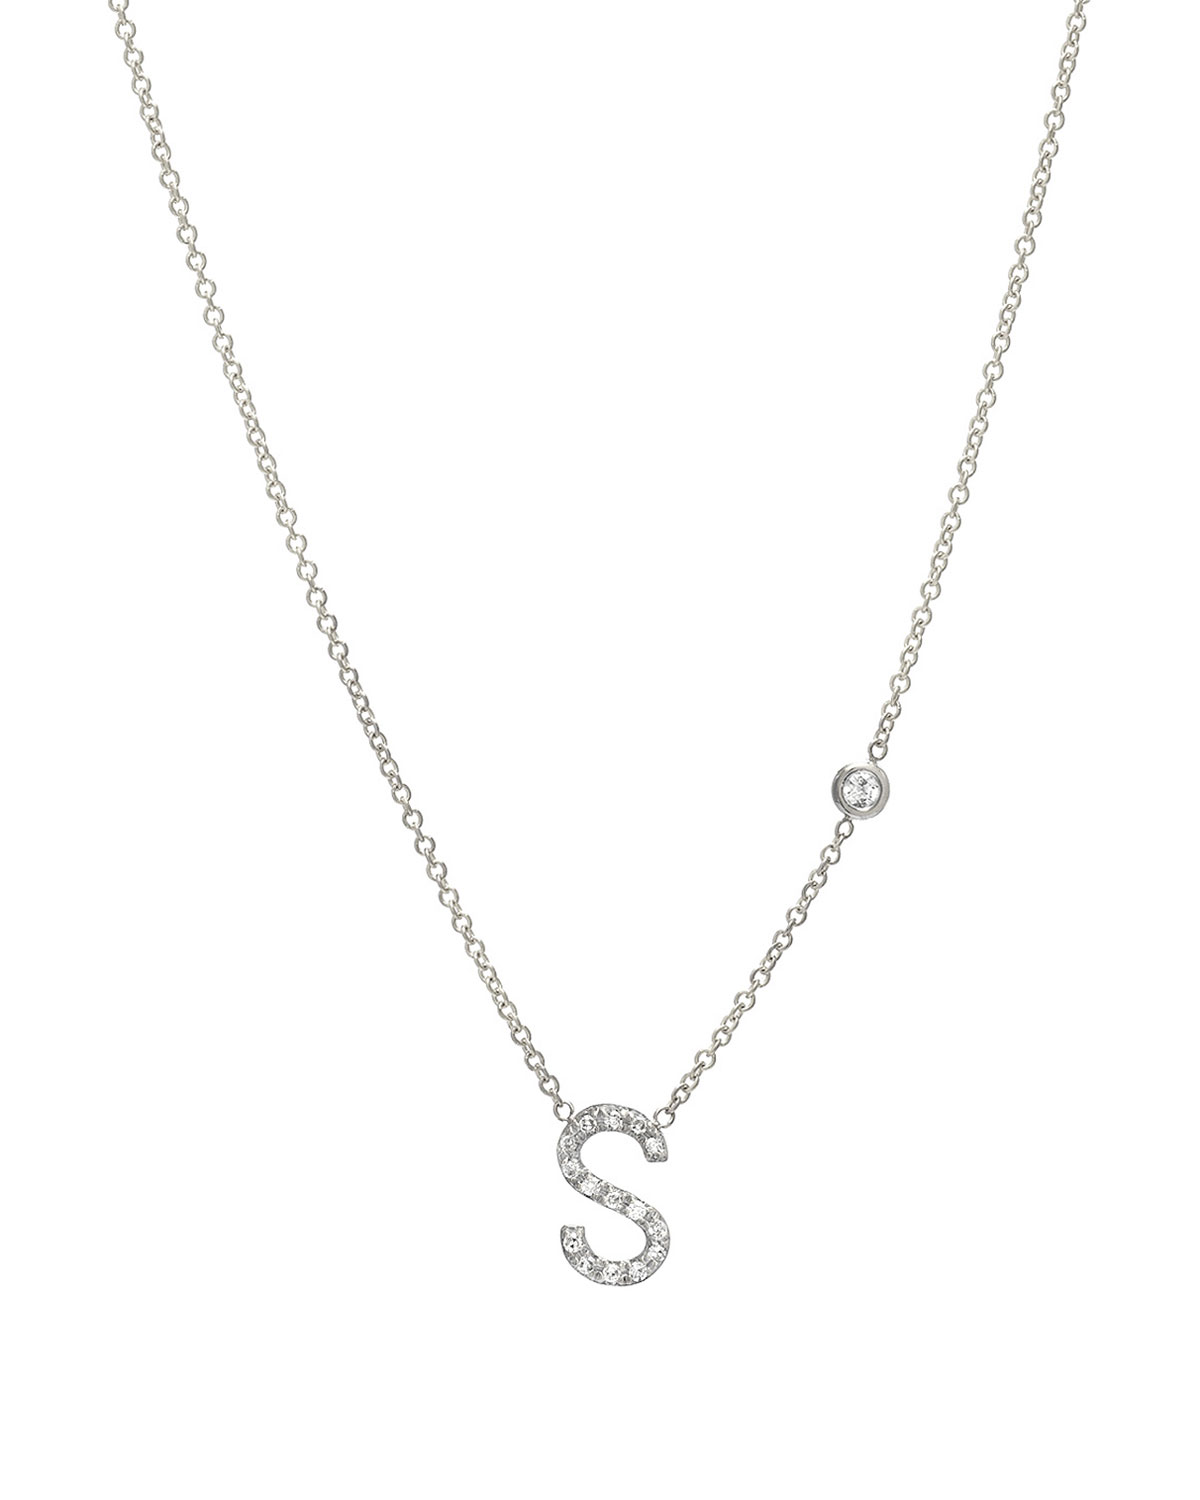 b6f057c4372 Personalized Diamond Initial & Bezel Necklace in 14K White Gold